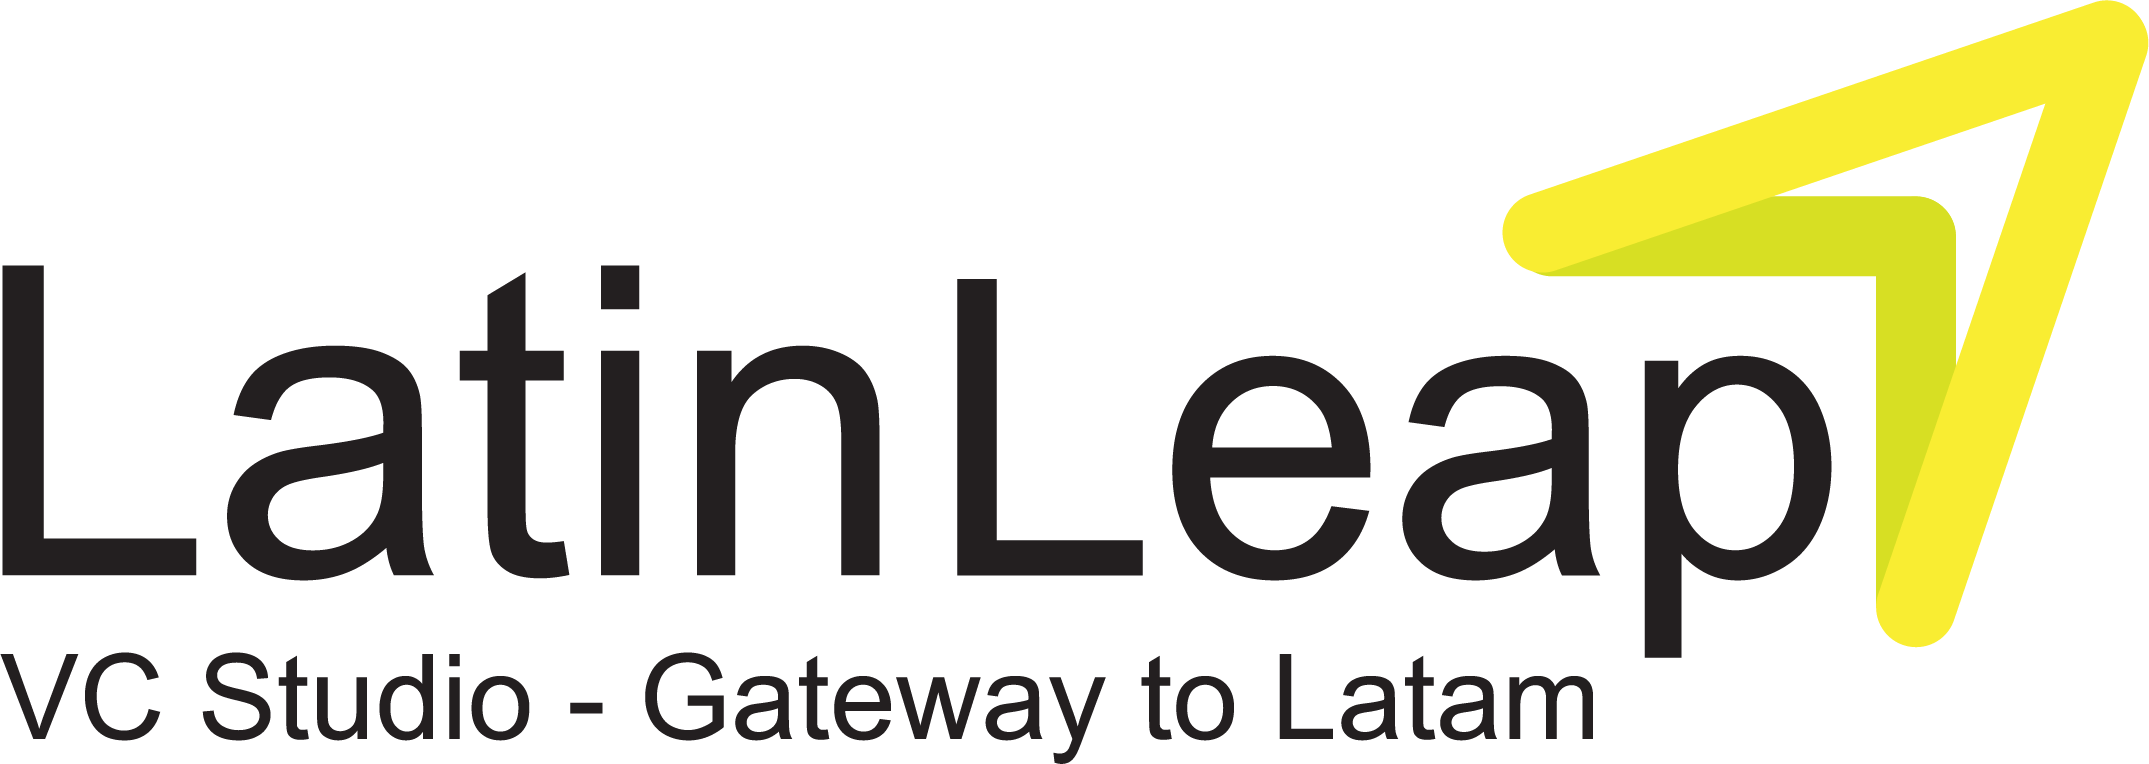 3 Questions to Latin Leap Ventures: Investor For Startups In LATAM Markets